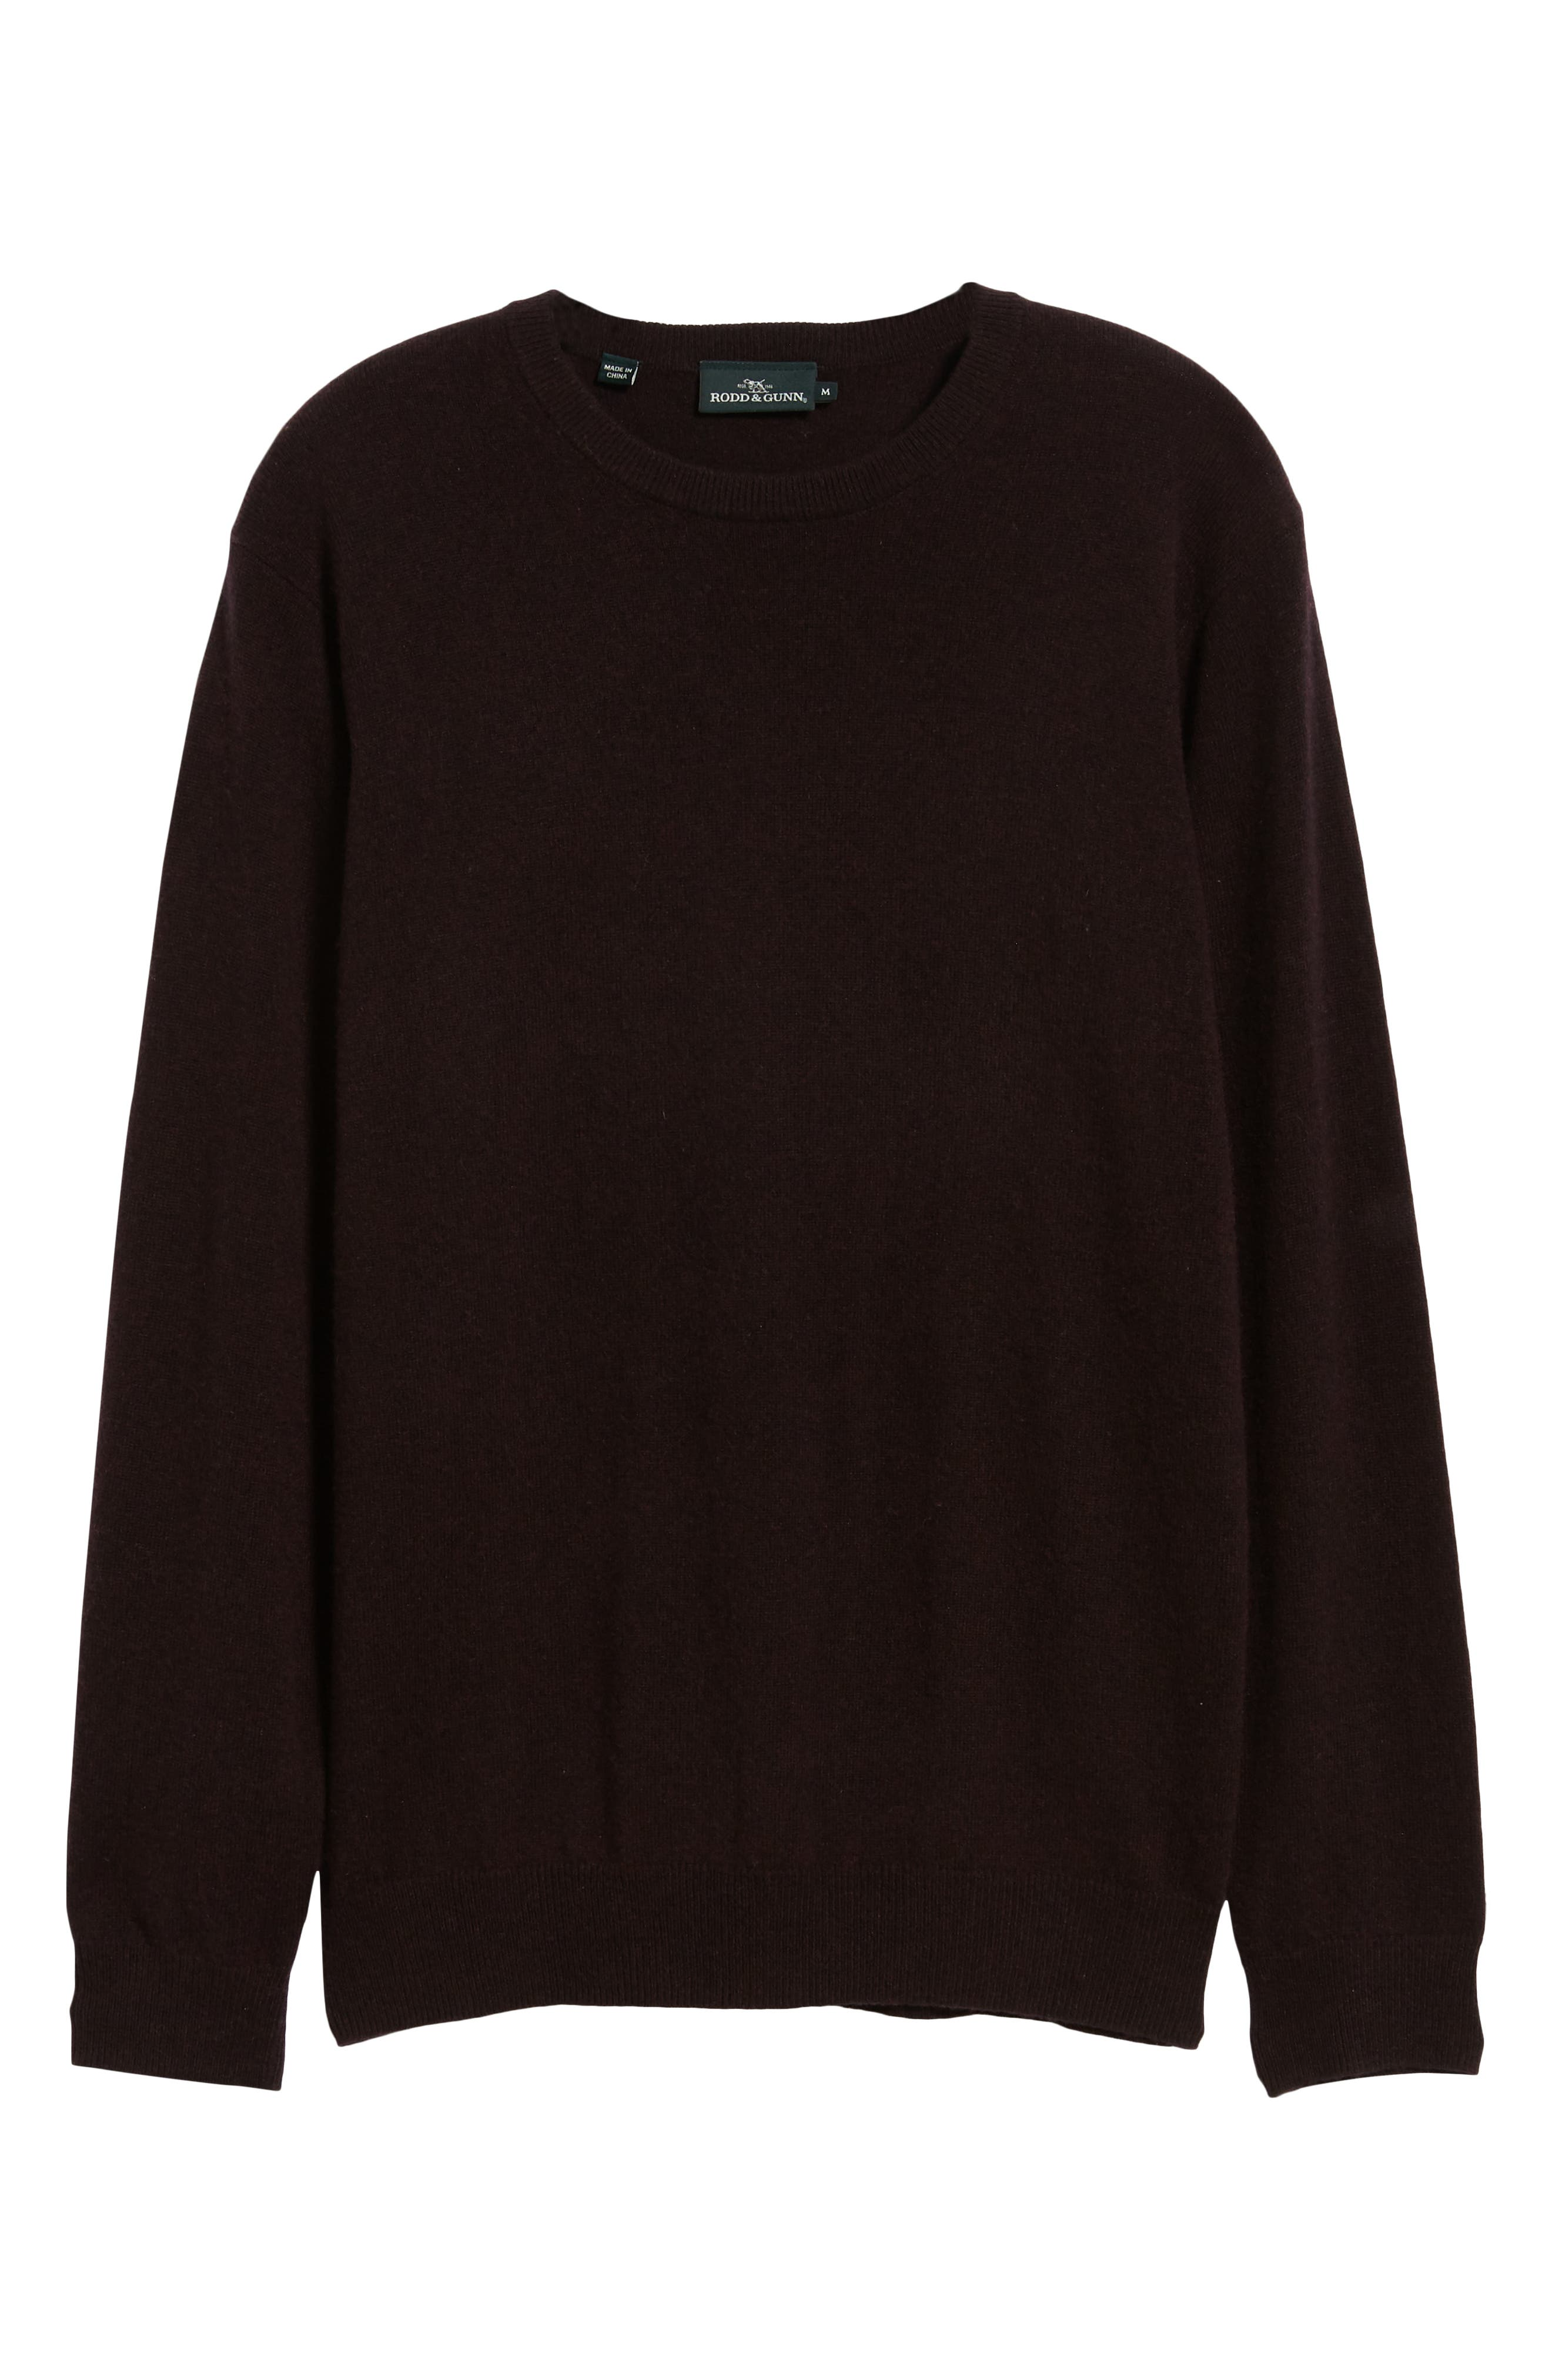 Queenstown Wool & Cashmere Sweater,                             Alternate thumbnail 6, color,                             BLACK FIG